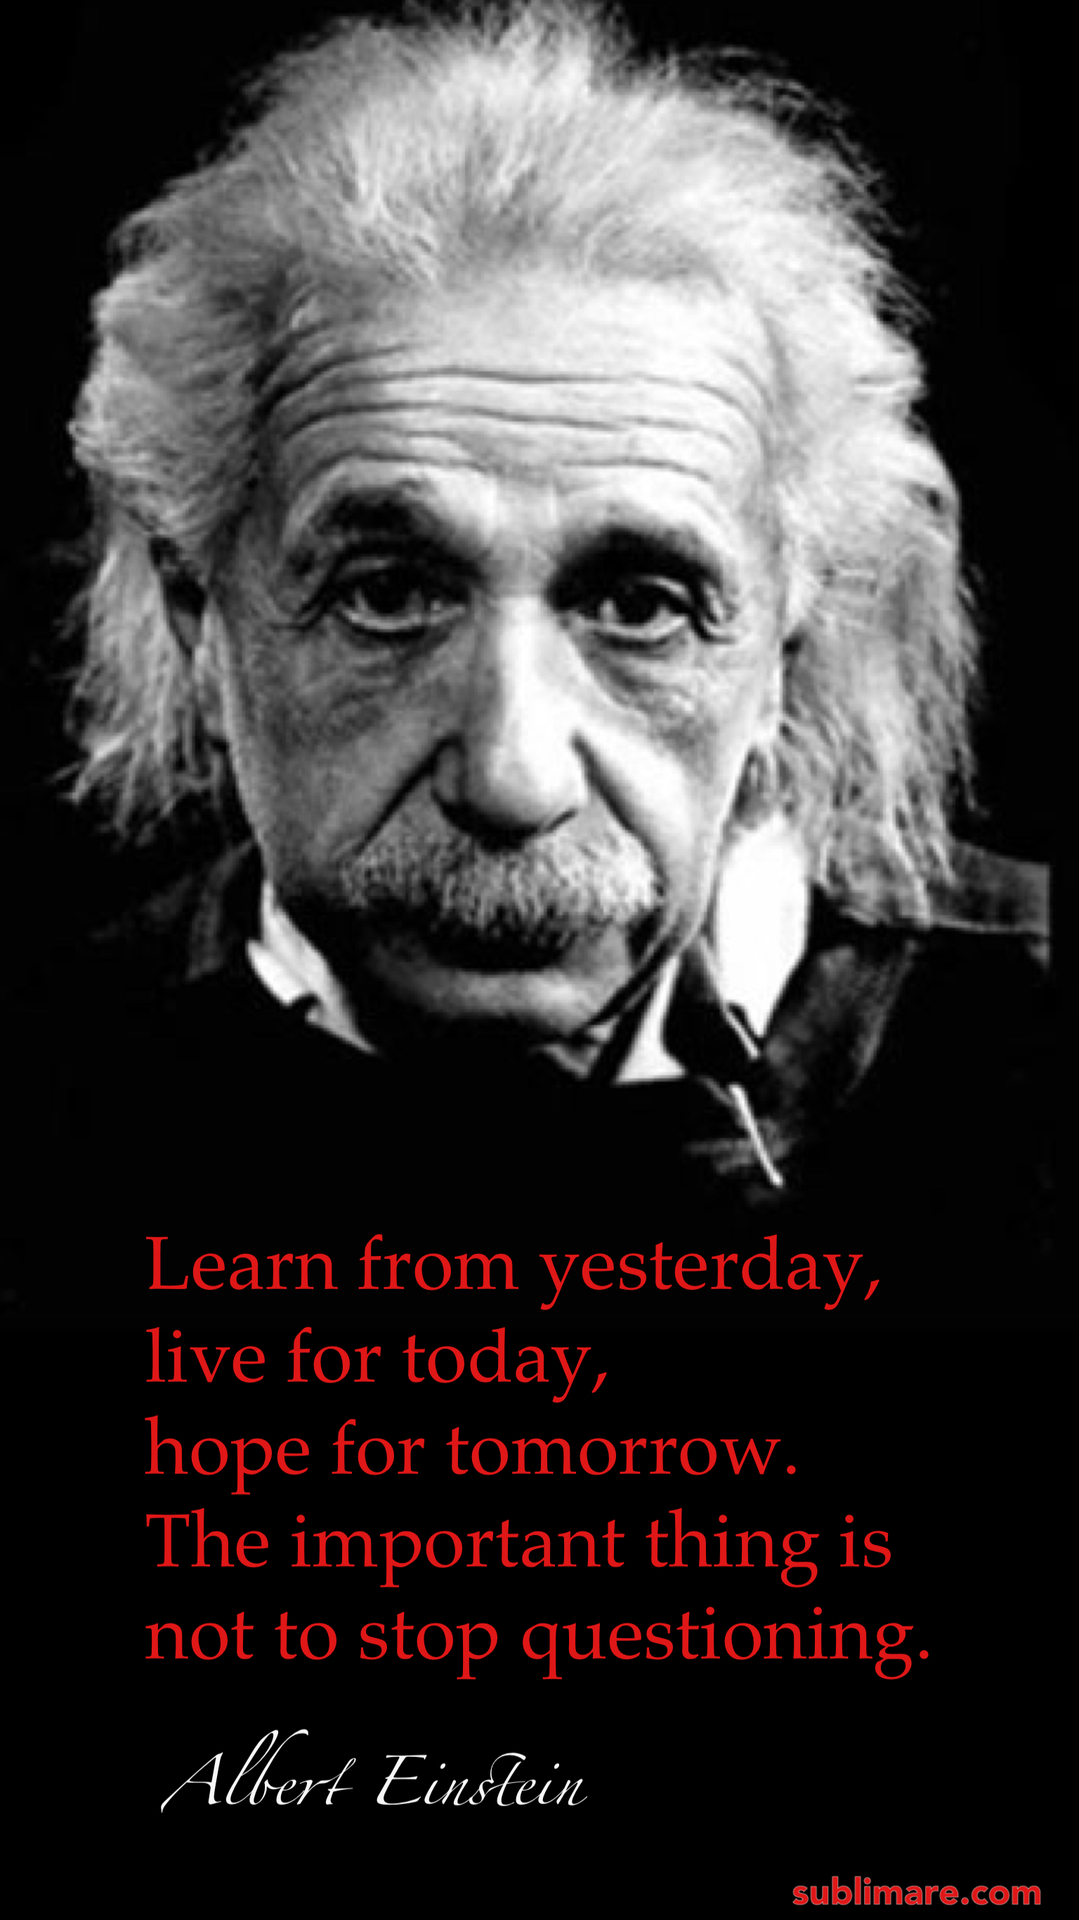 Einstein_Don't stop questioning